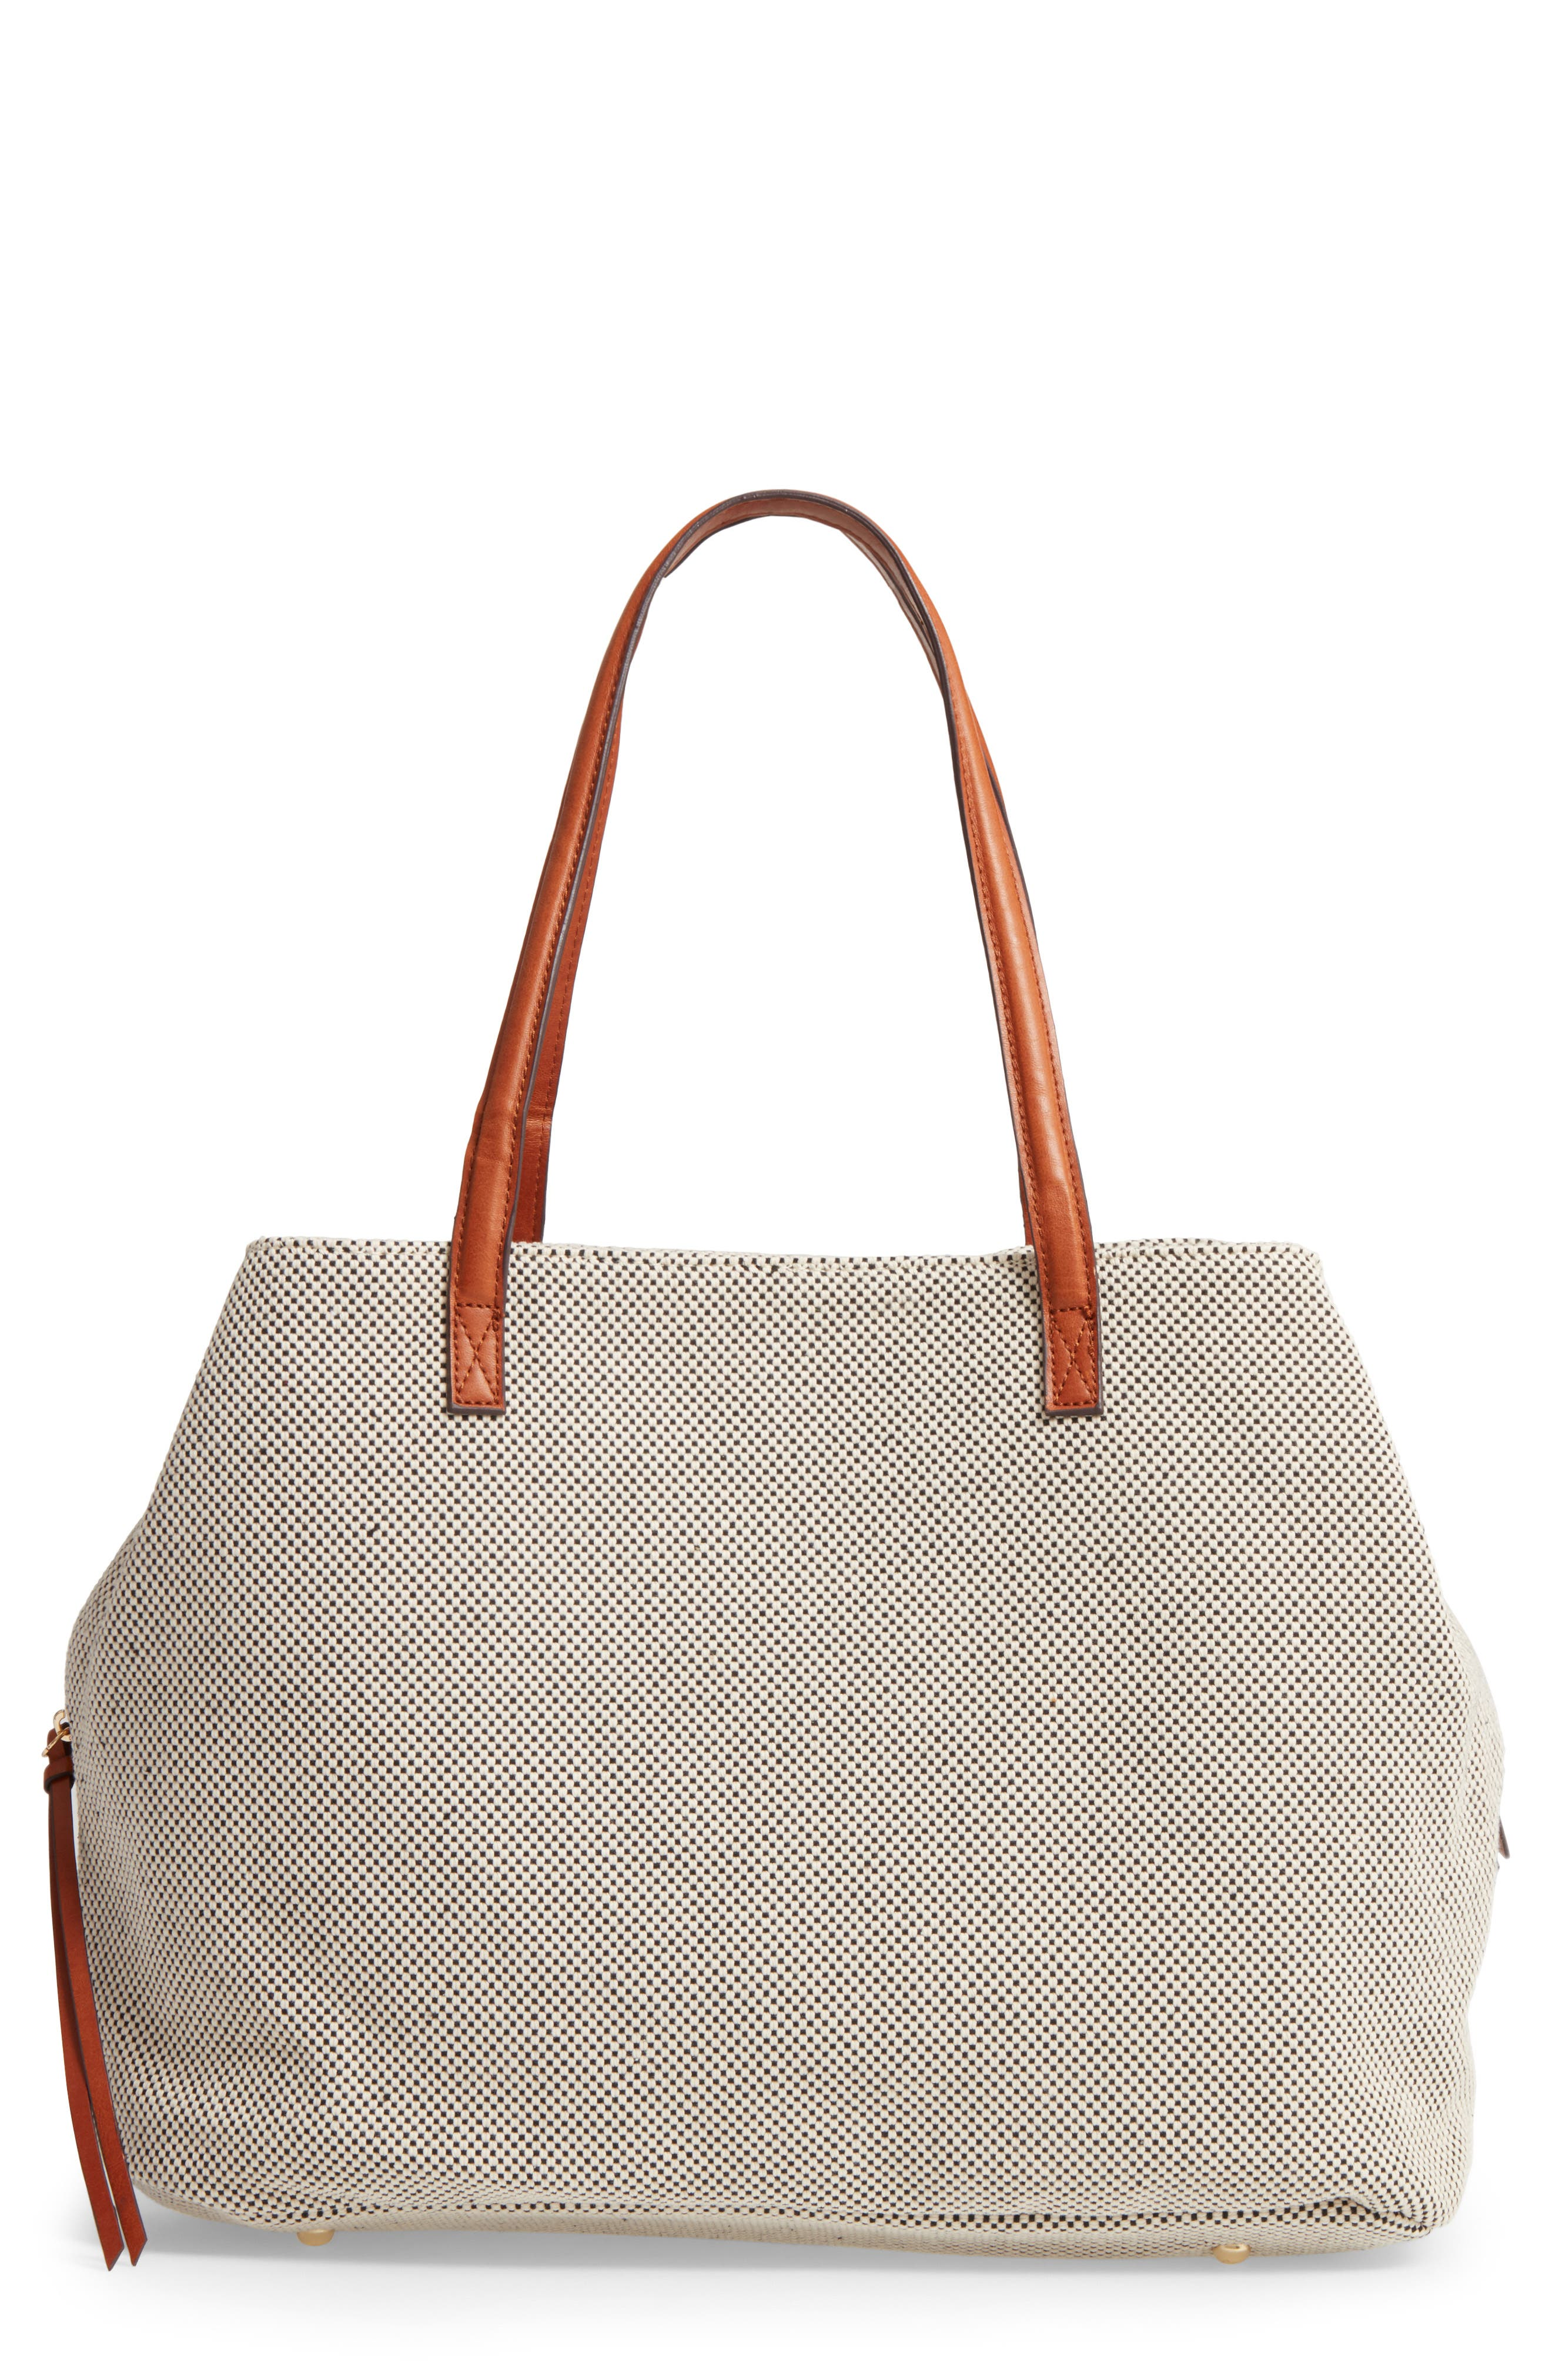 Alternate Image 1 Selected - Sole Society 'Oversize Millie' Tote